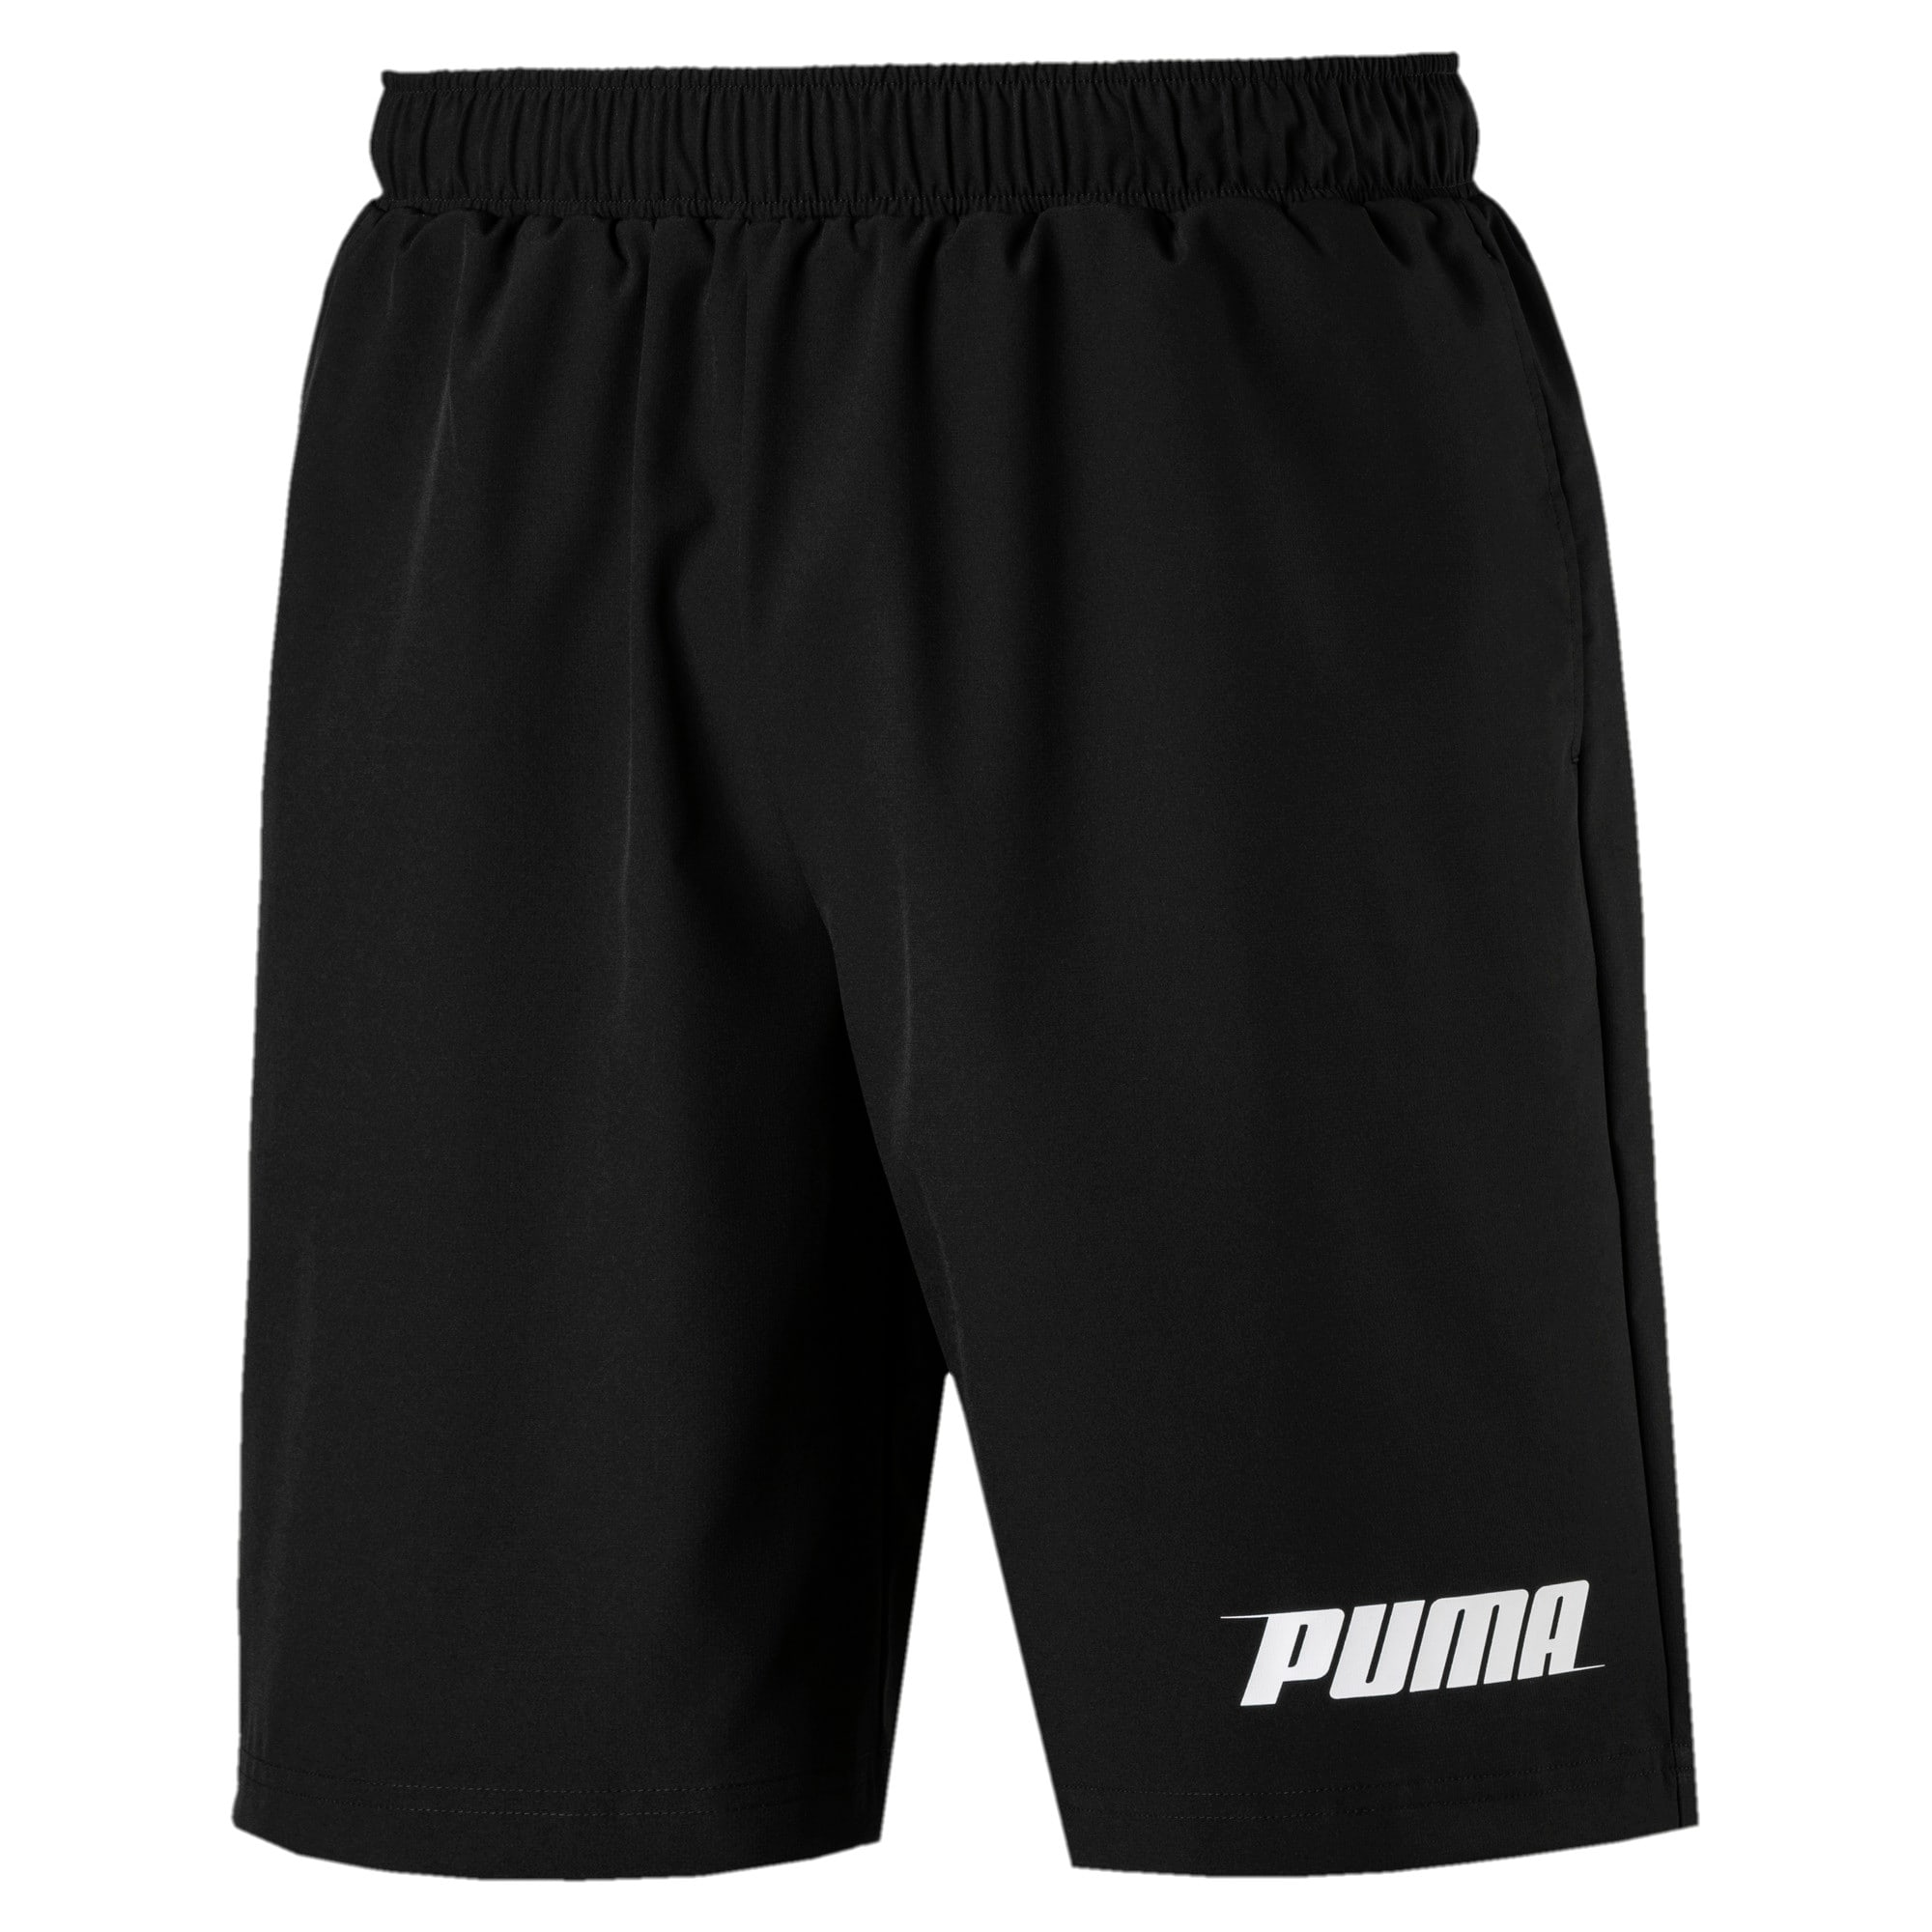 "Rebel Woven 9"" Men's Shorts, Puma Black, large"